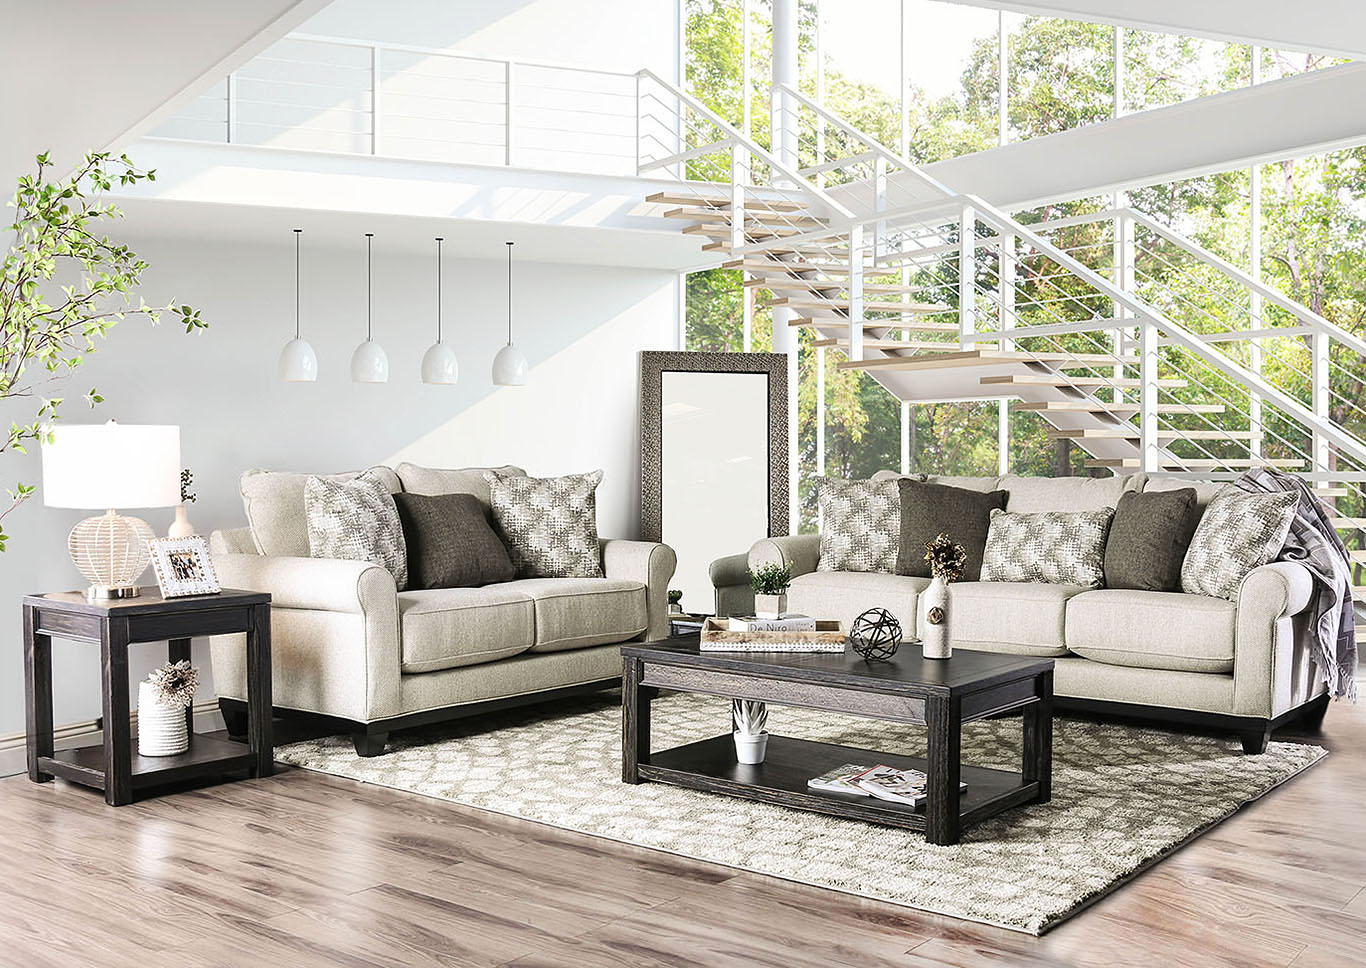 beige sofa set how do you fix a hole in leather lazy river furniture asma of america